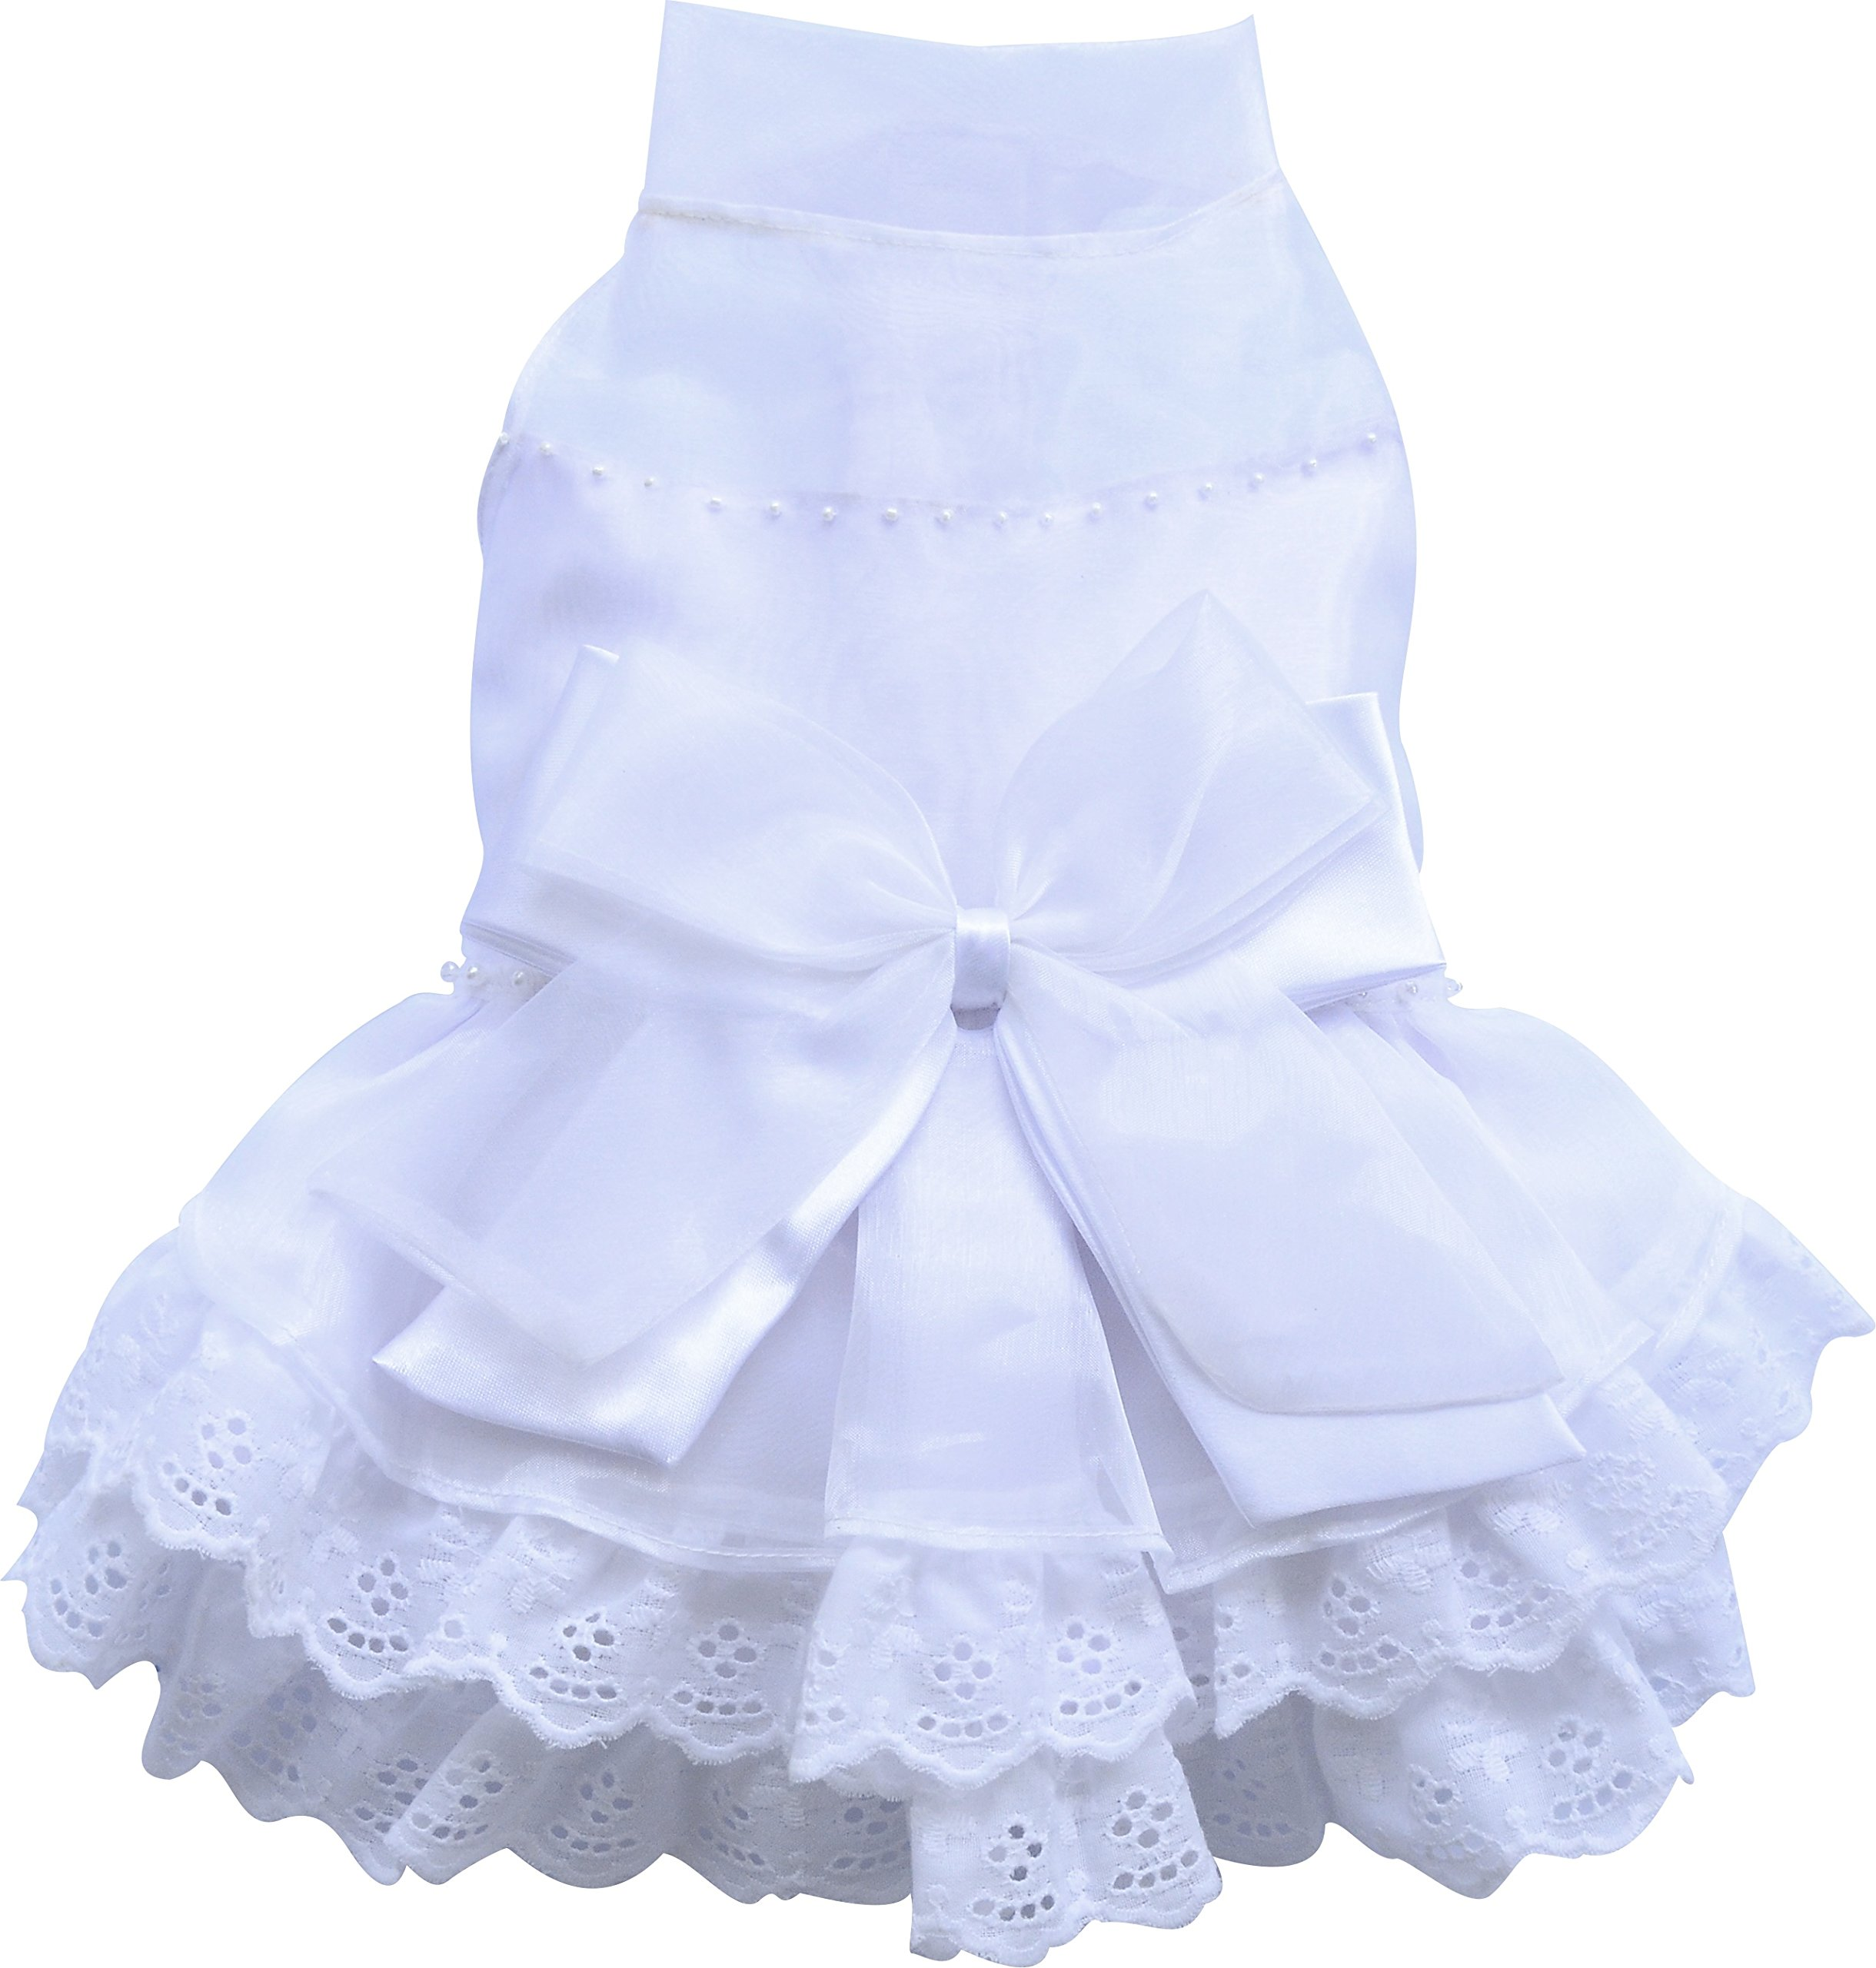 DoggyDolly Authentic Formal Dress, XX-Large, White